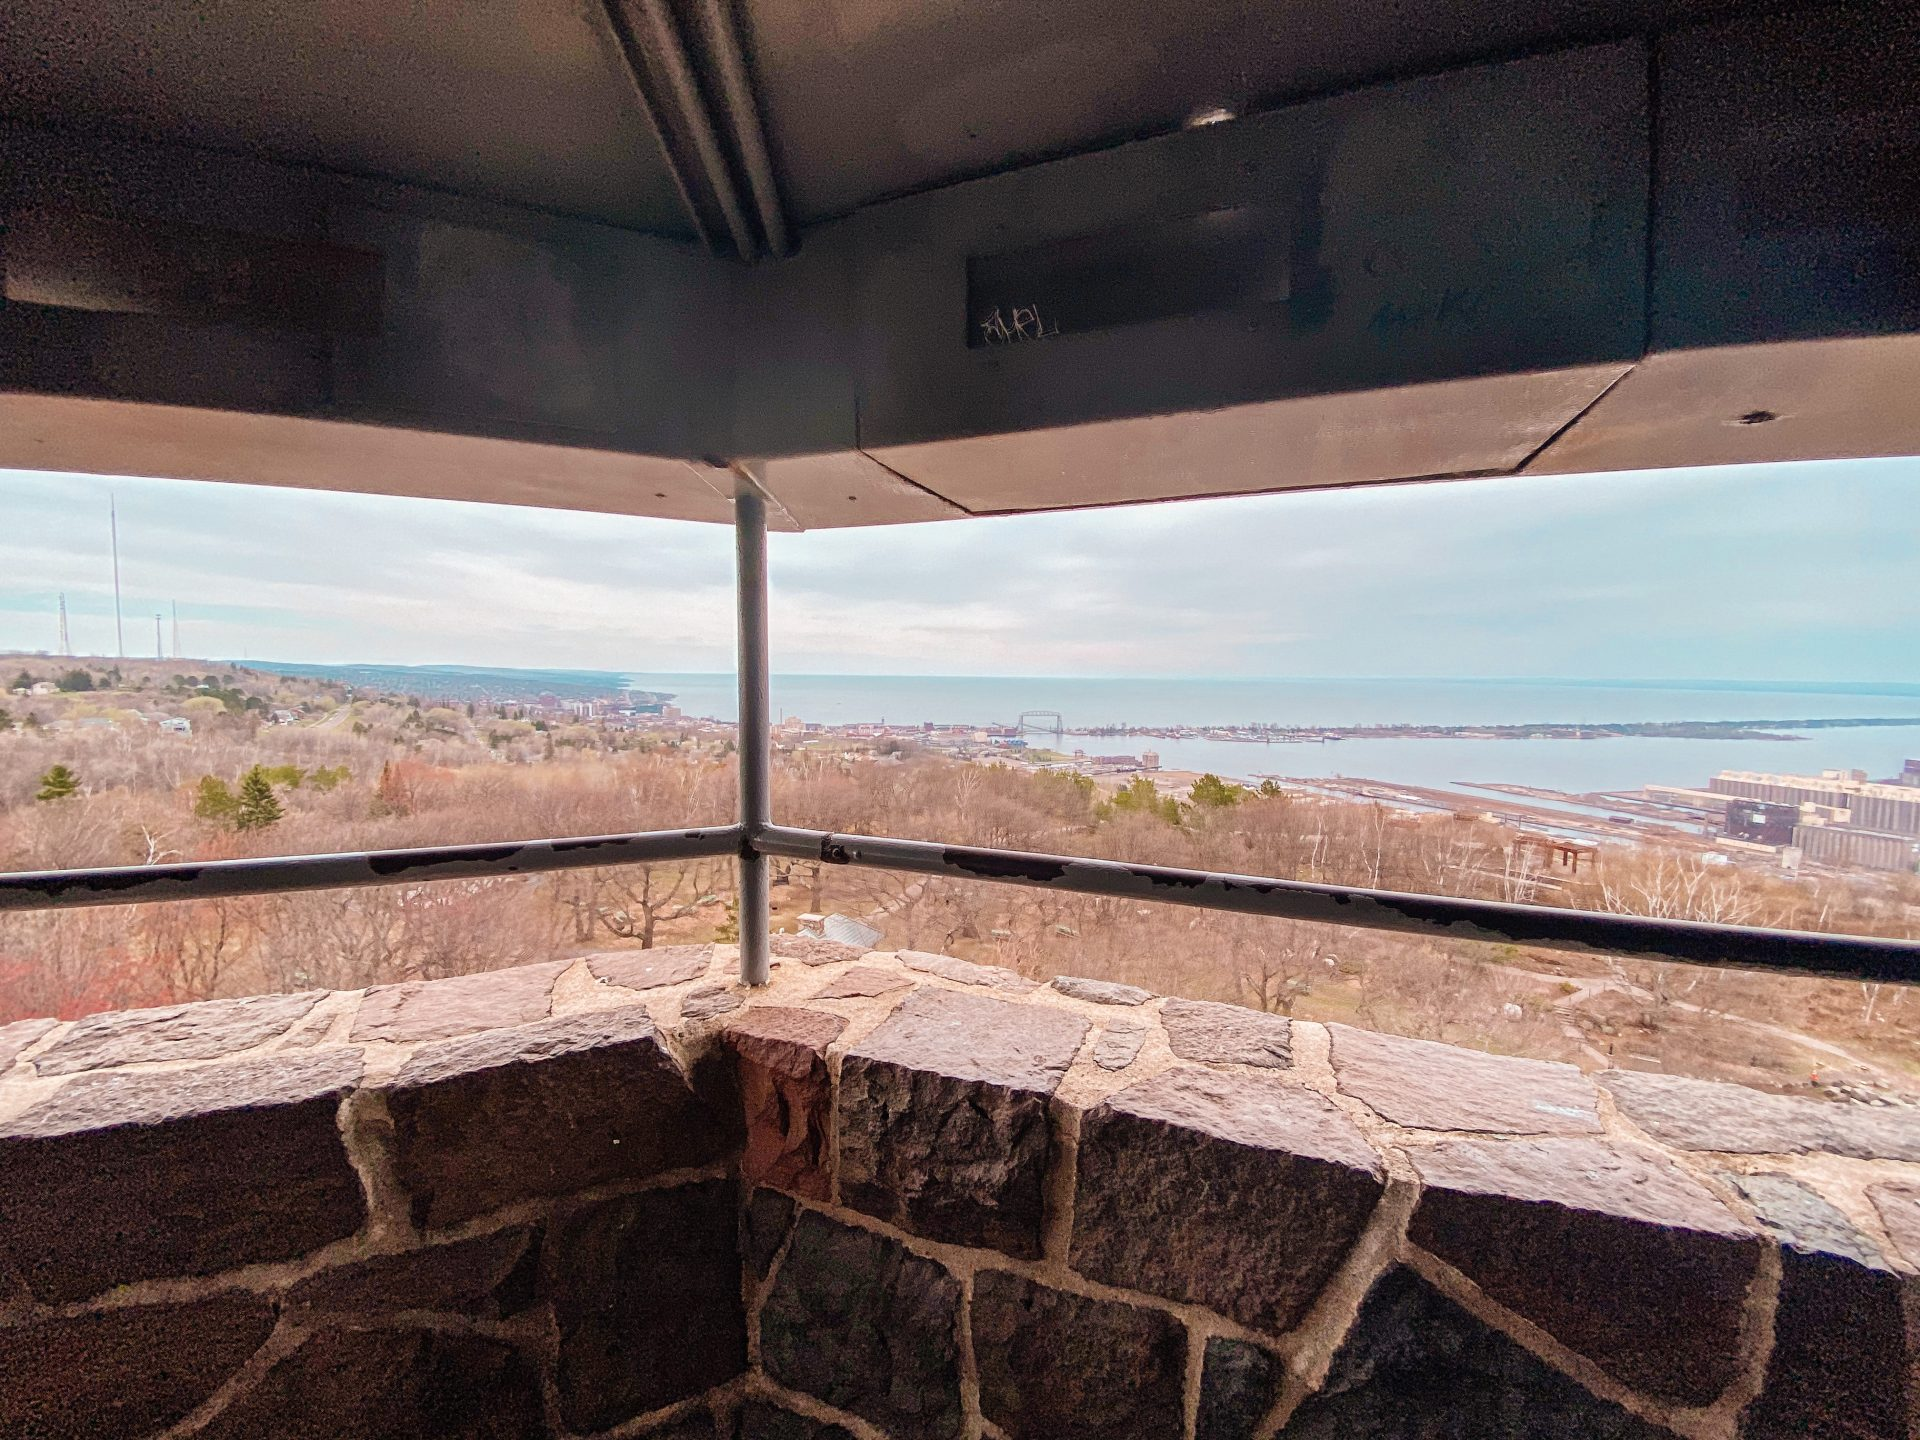 The view out over Duluth and Lake Superior from Enger Tower located at Enger Tower Park in Minnesota